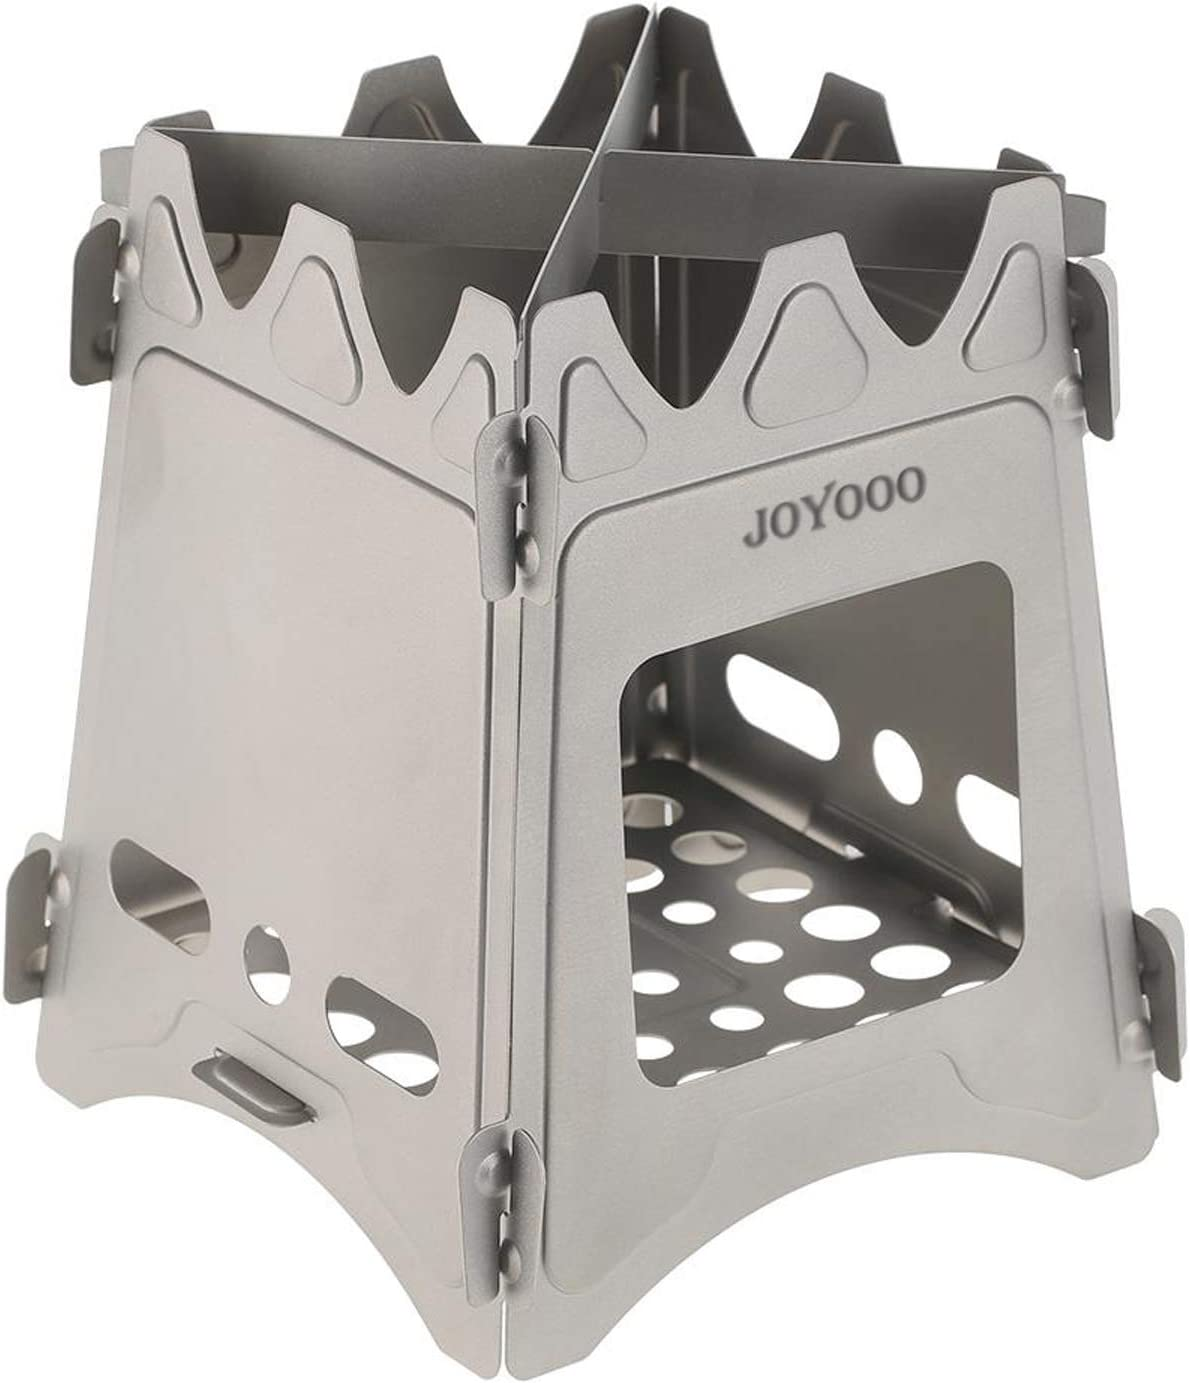 JOYOOO Ultralight Camping Stove Weighs 7.3 OZ, 100 Pure Titanium Wood Burning Camping Stove Portable Foldable for Camping, Backpacking, Hiking, and Bushcraft Survival, Stronger Lighter VS Steel